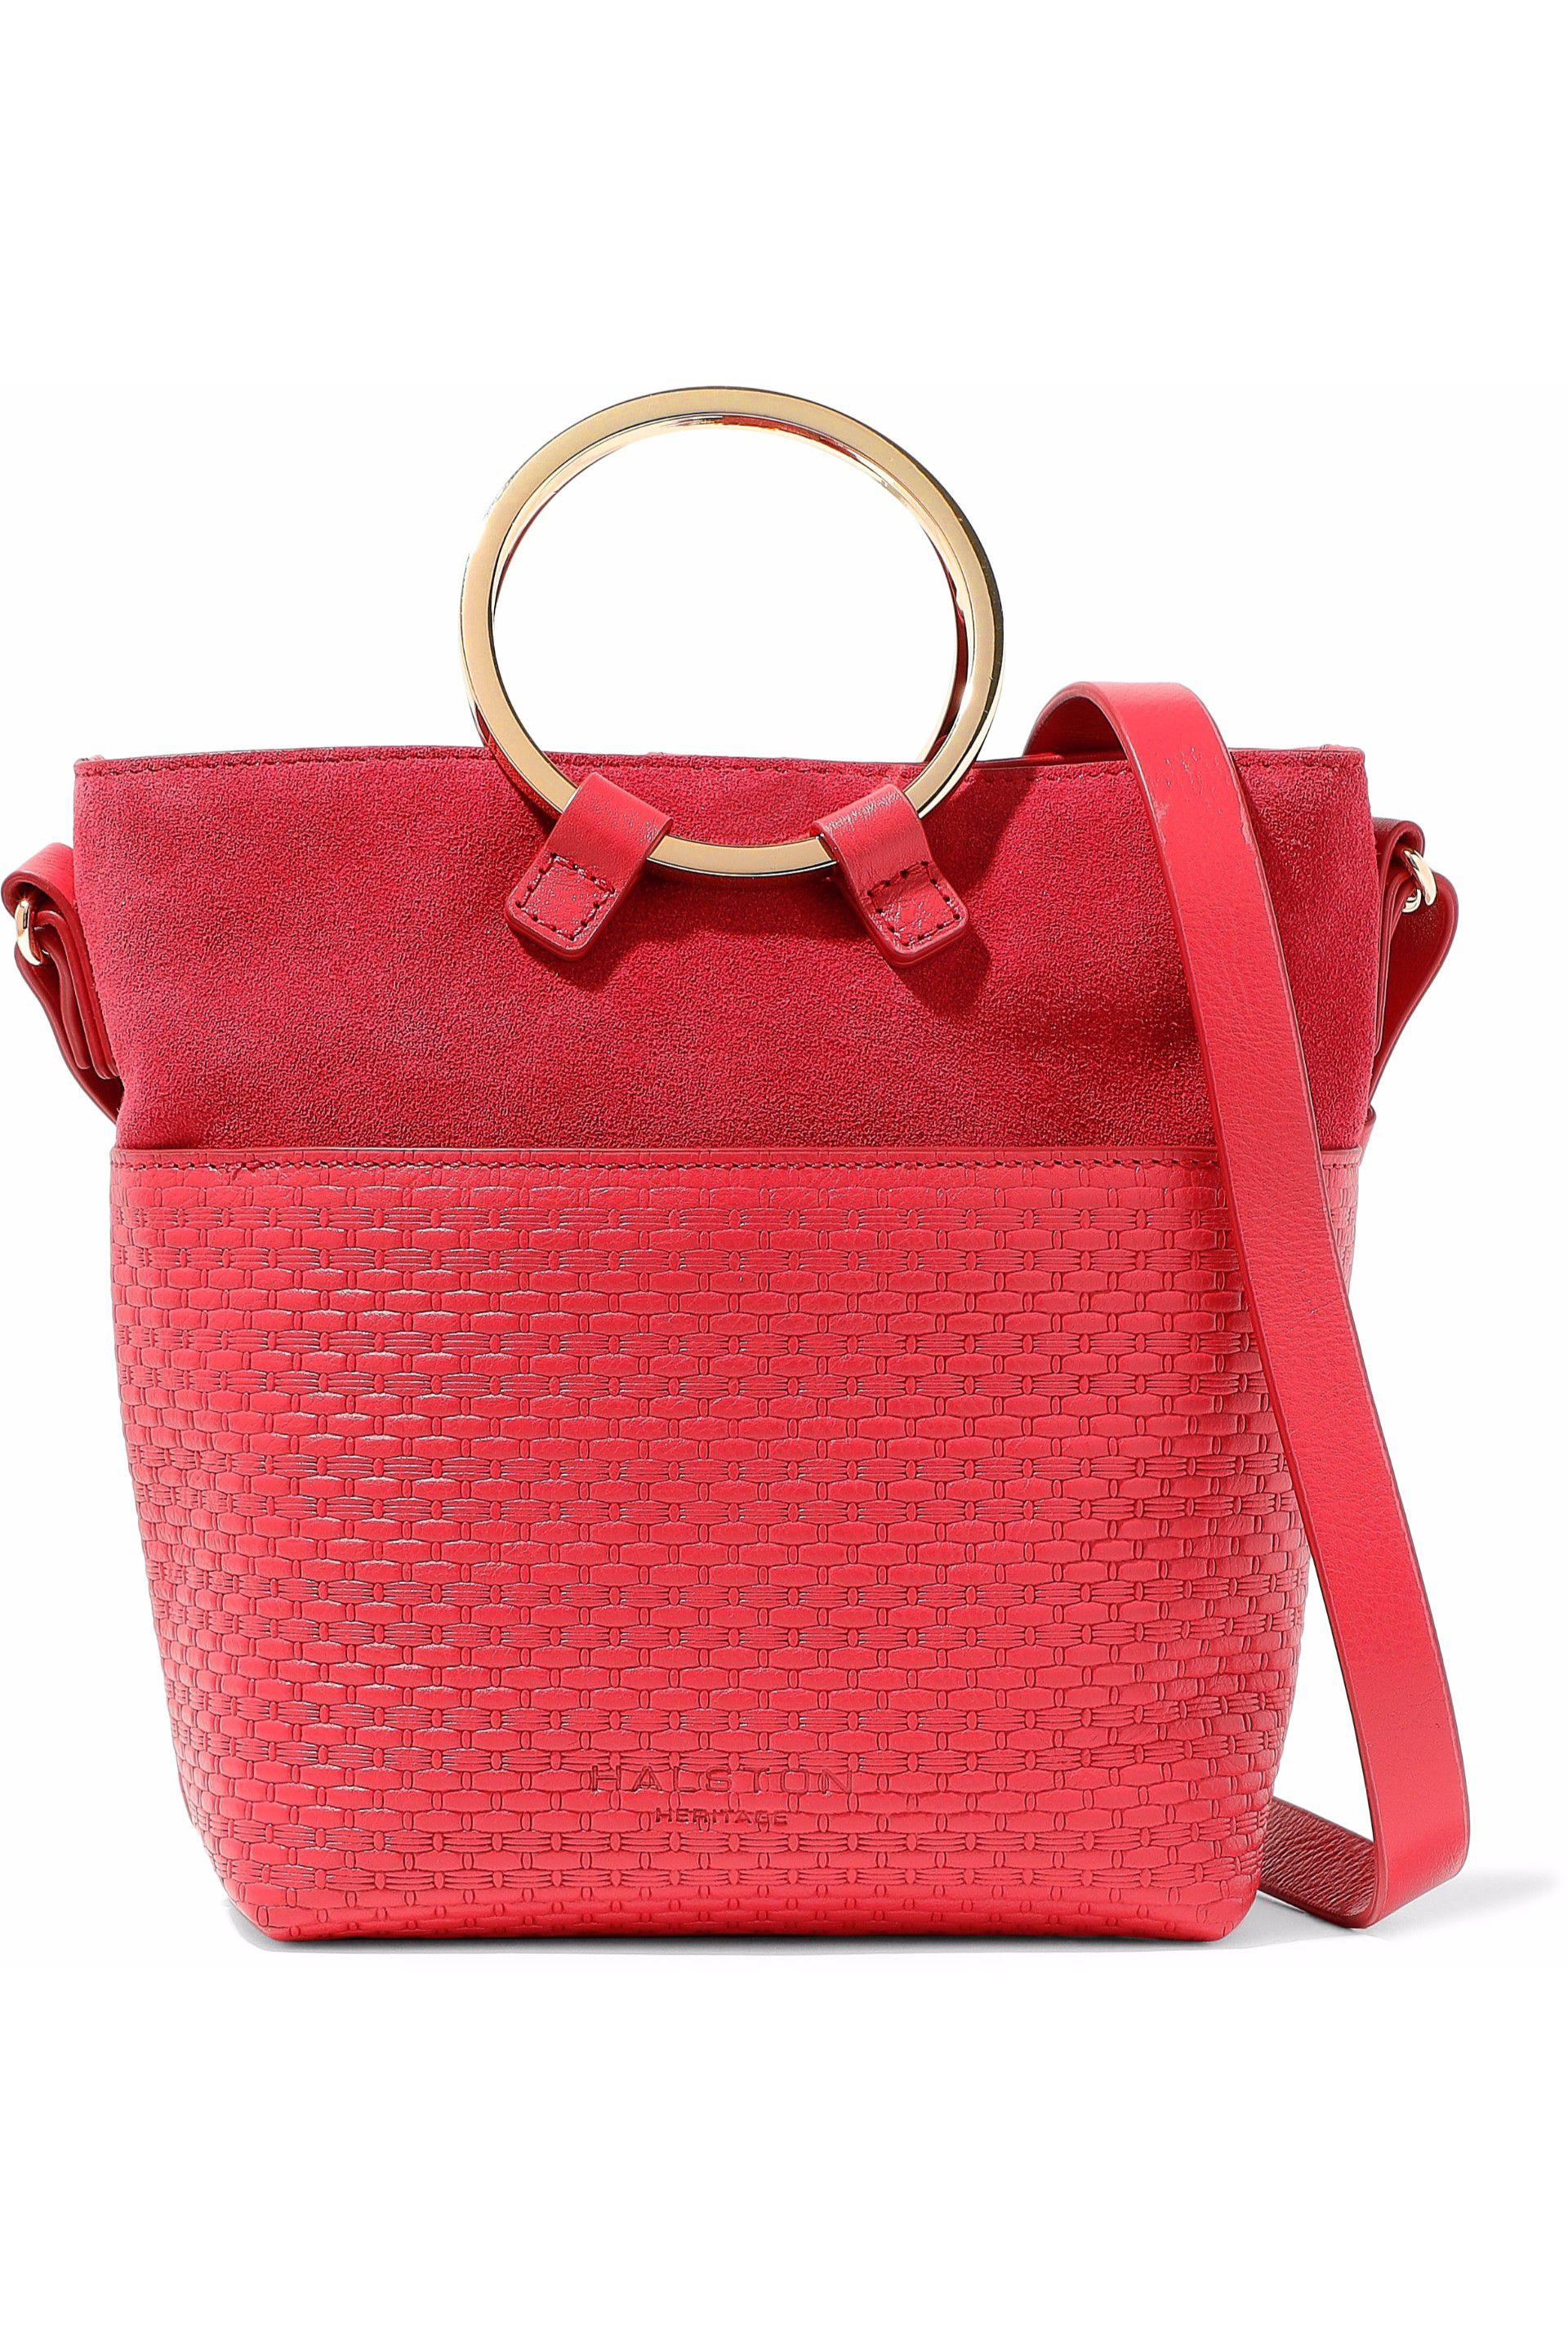 c87aaec8616f Halston Nubuck-paneled Embossed Leather Shoulder Bag in Red - Lyst